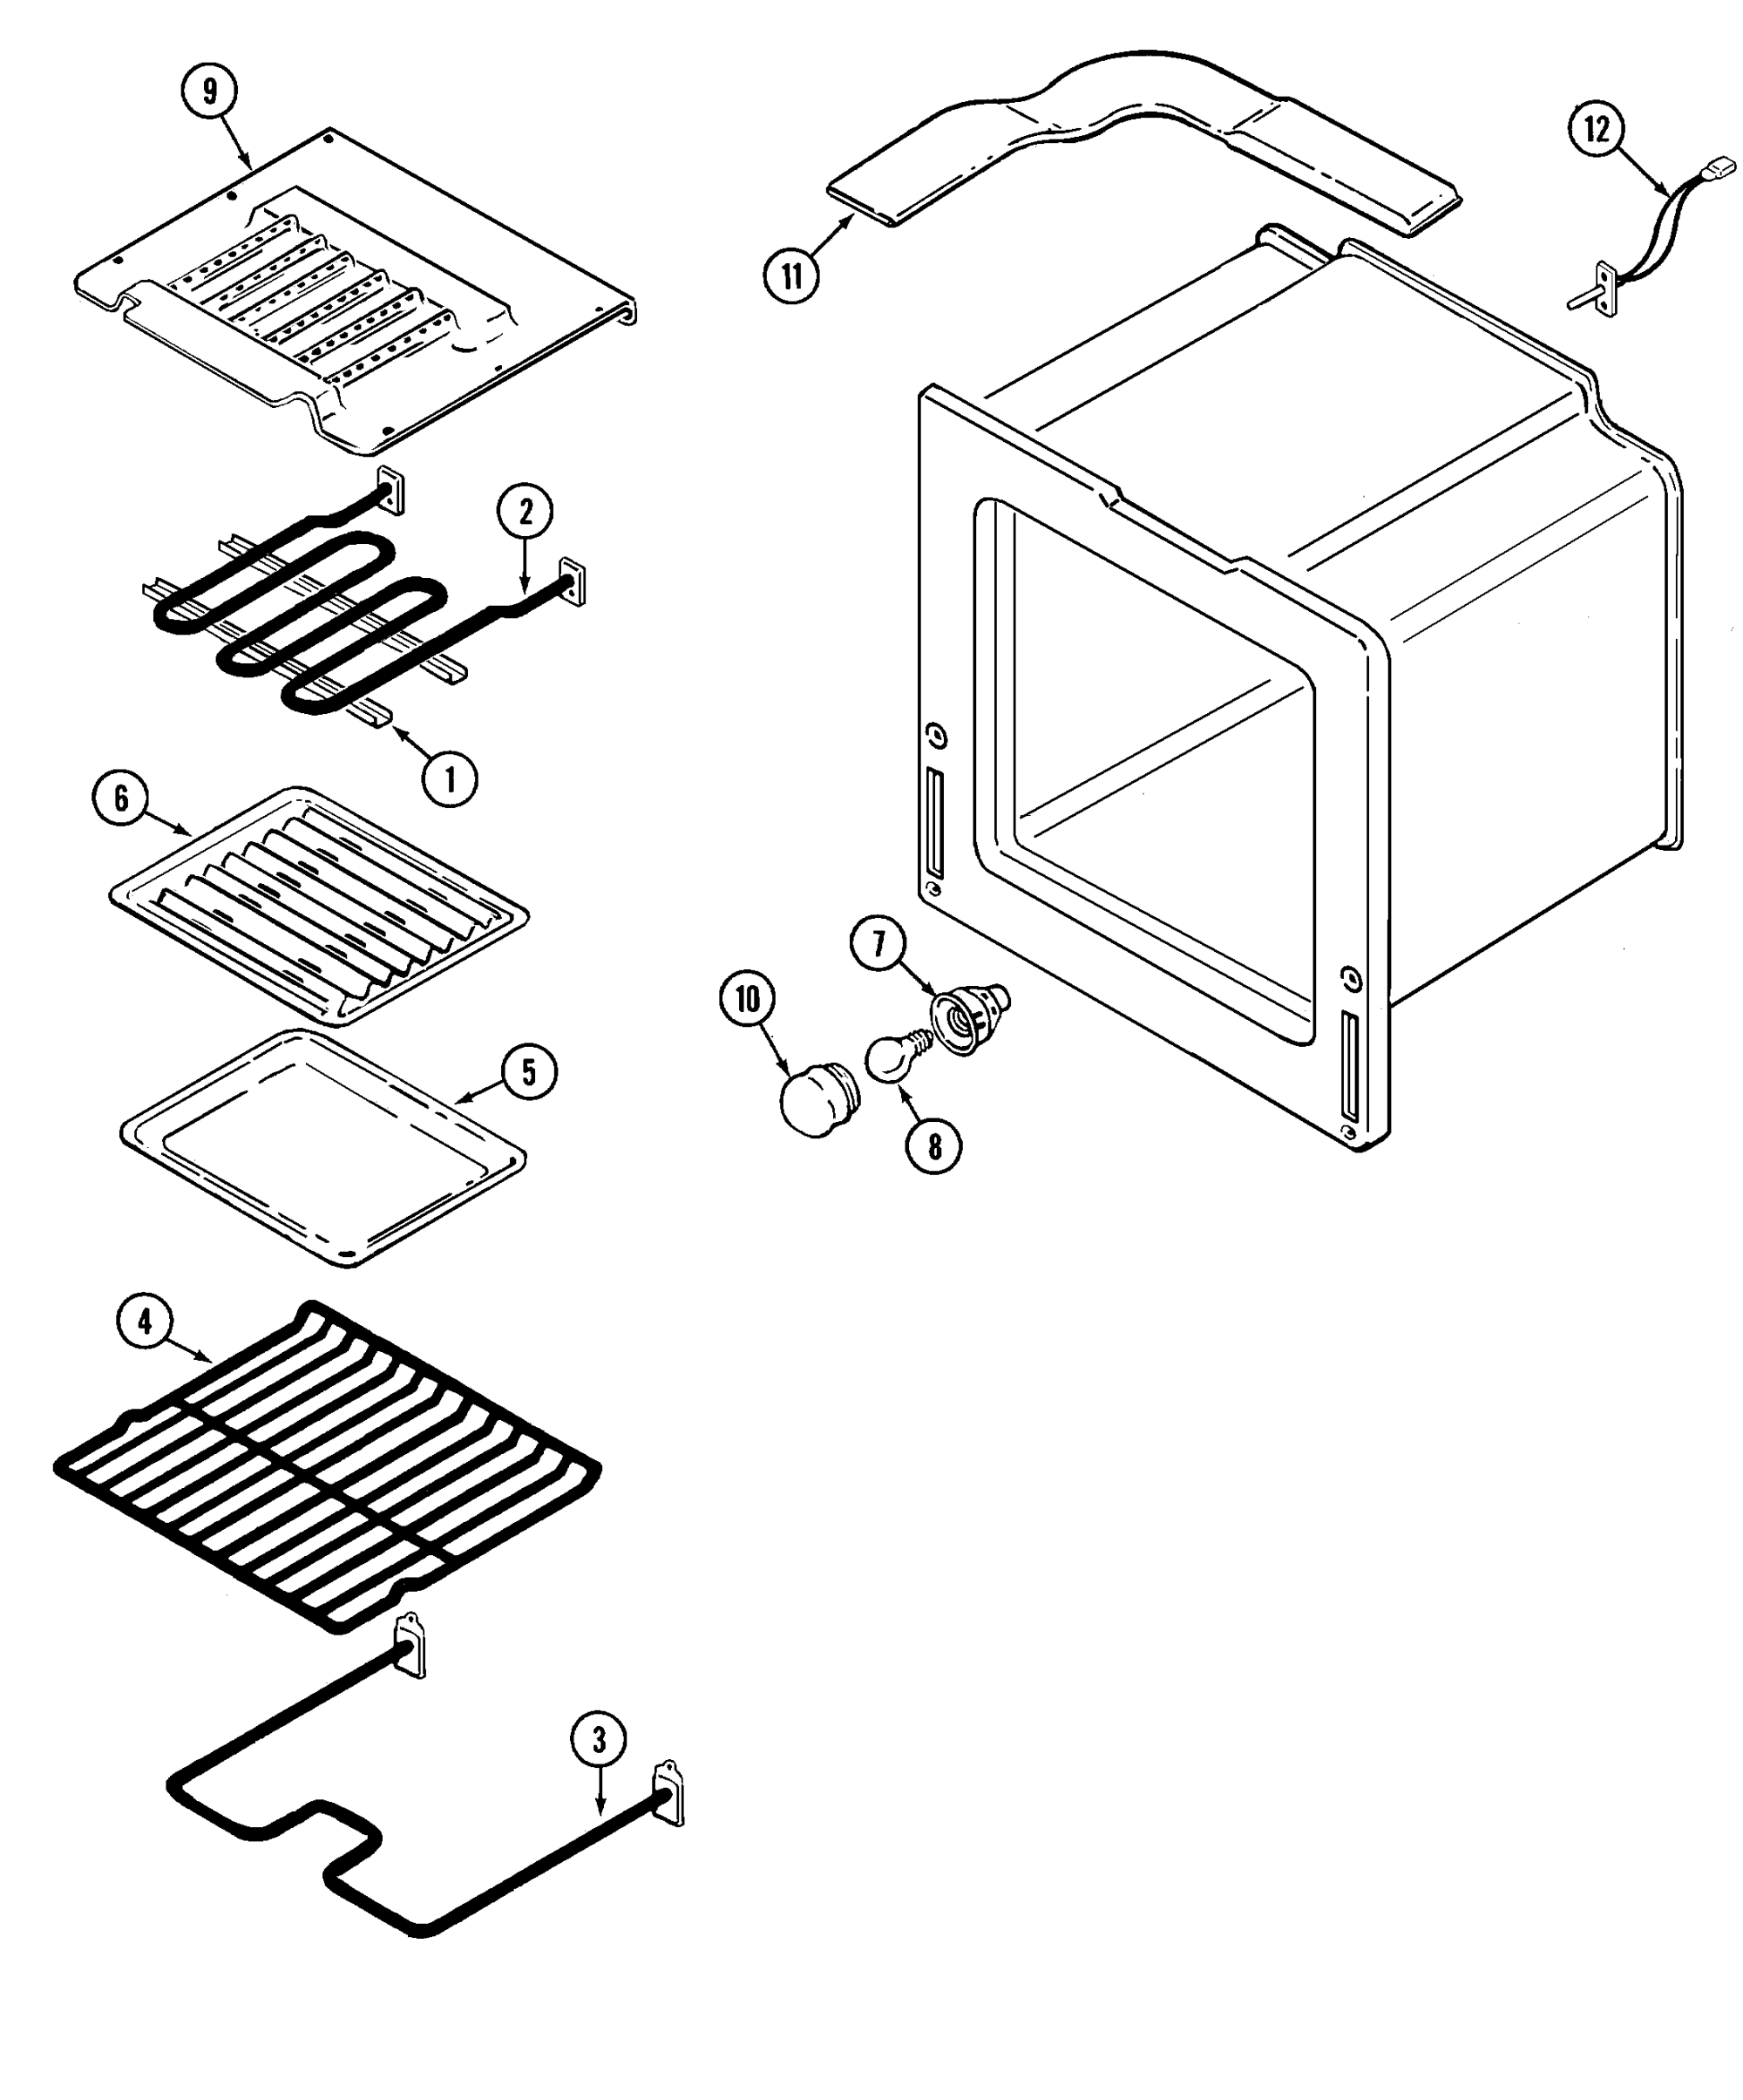 hight resolution of oven parts diagram